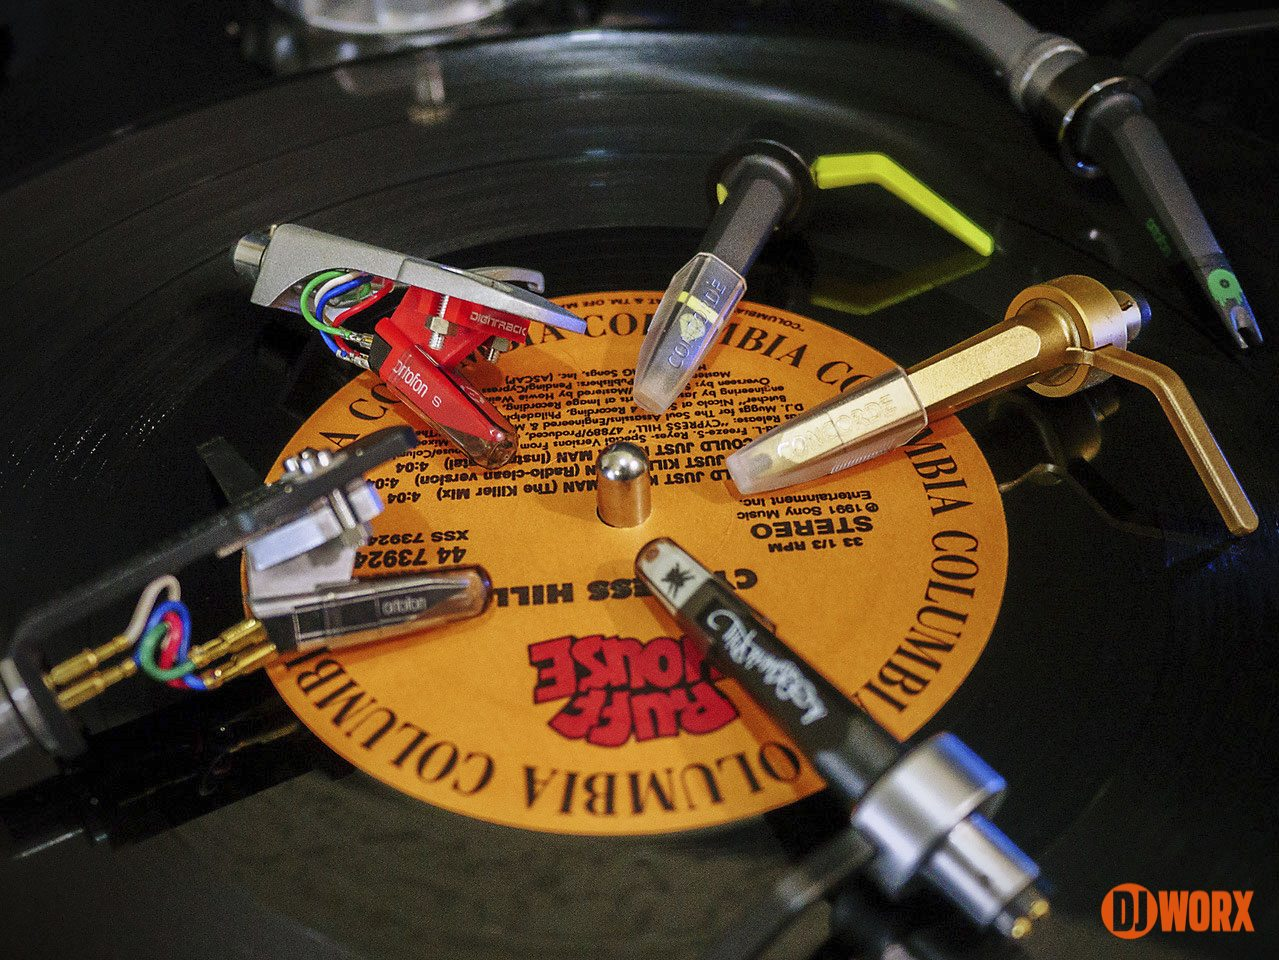 REVIEW: Ortofon Concorde Mix and Club MKII carts • DJWORX